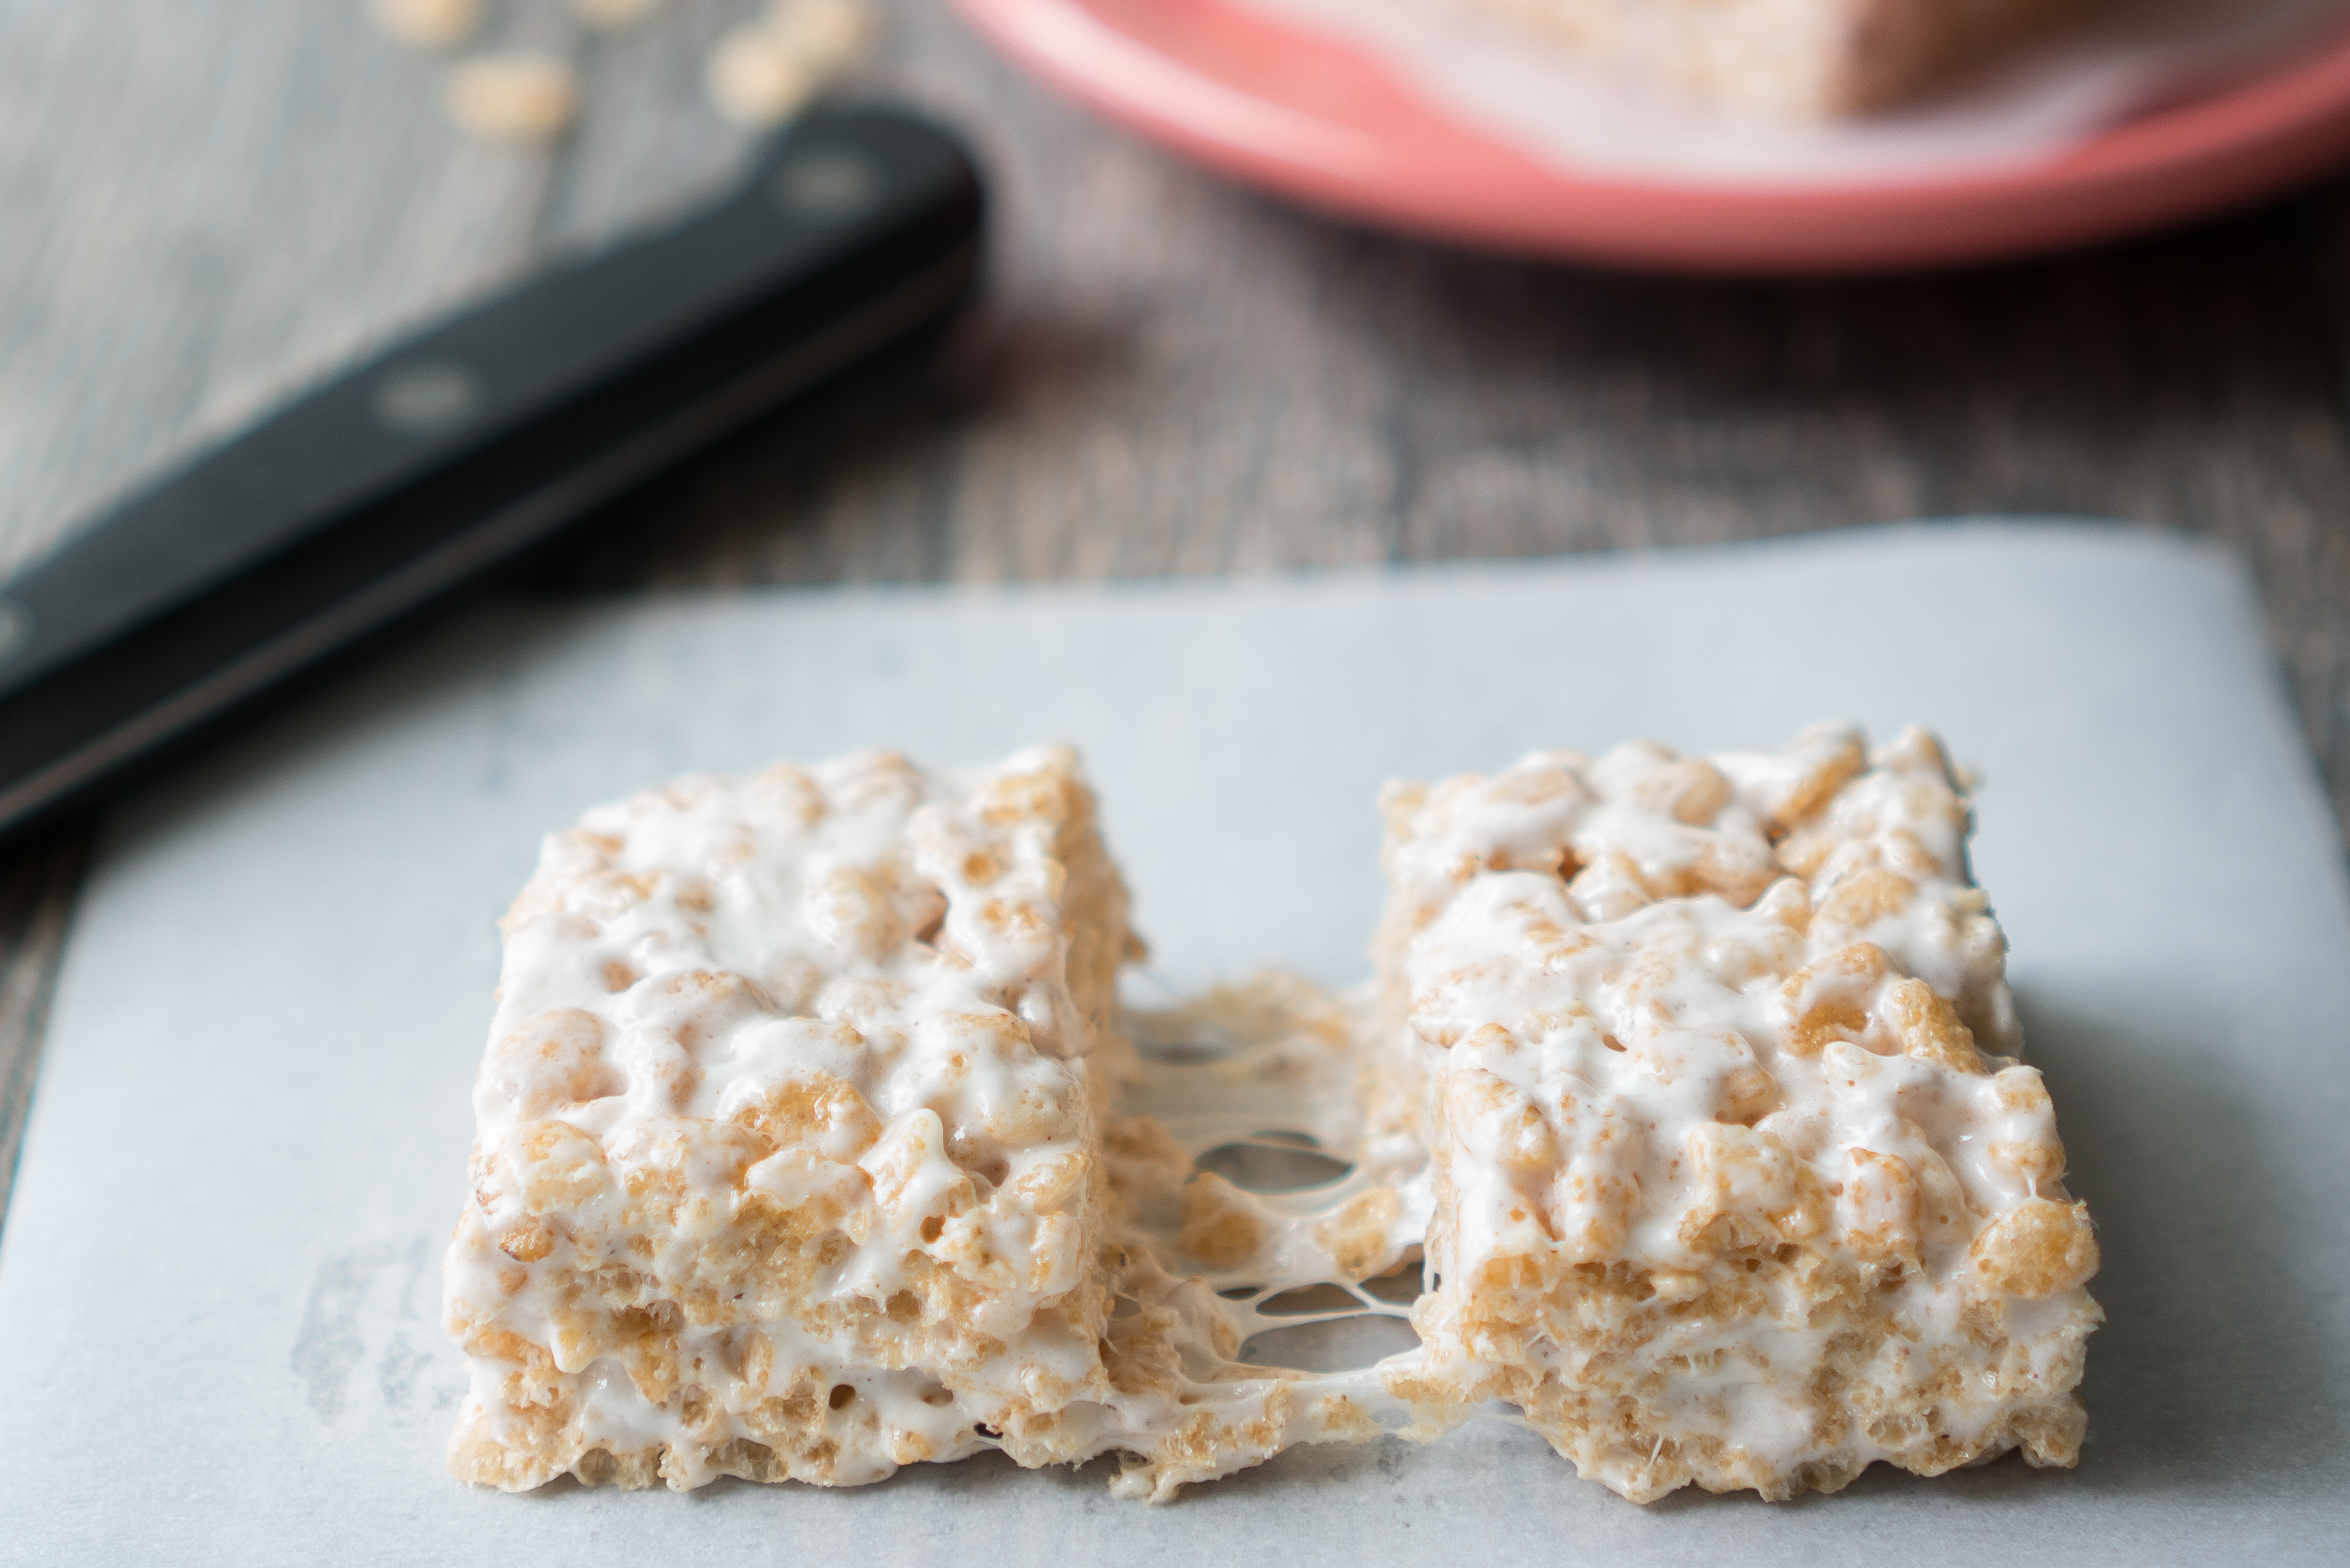 Cardamom Rice Krispie Treats – Simple recipe for Cardamom Rice Krispie Treats, gluten-free & vegan friendly. You'd never know that these use coconut oil instead of butter & brown rice cereal. A twist on the classic gooey marshmallow square with vanilla, cardamom, cinnamon, and salt! ♥   freeyourfork.com